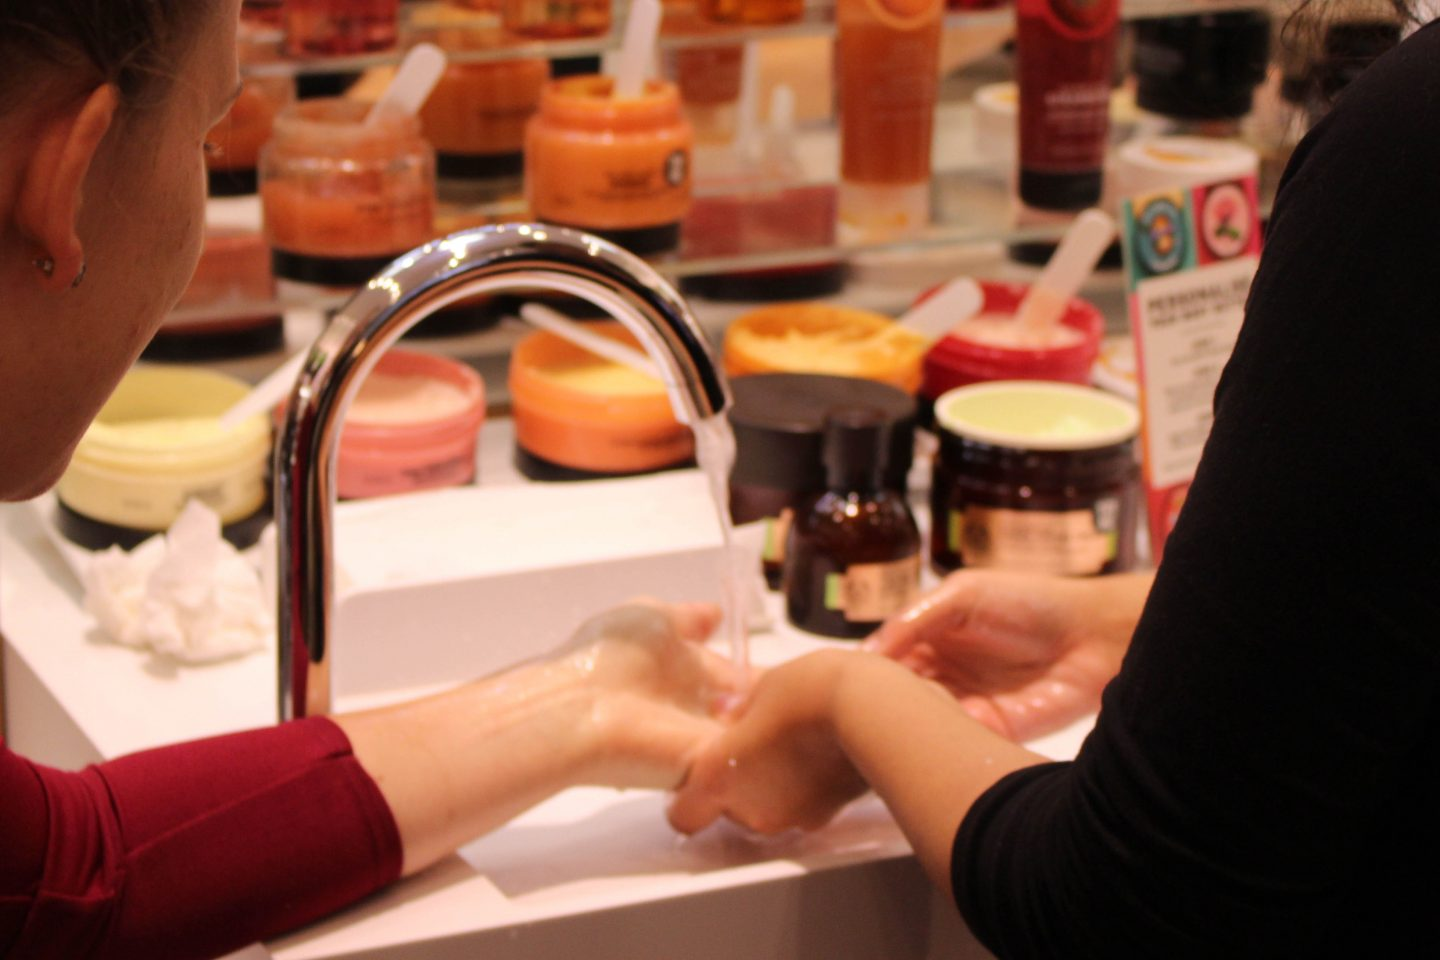 Find out about my night at the body shop event, the new collection and the products I bought.